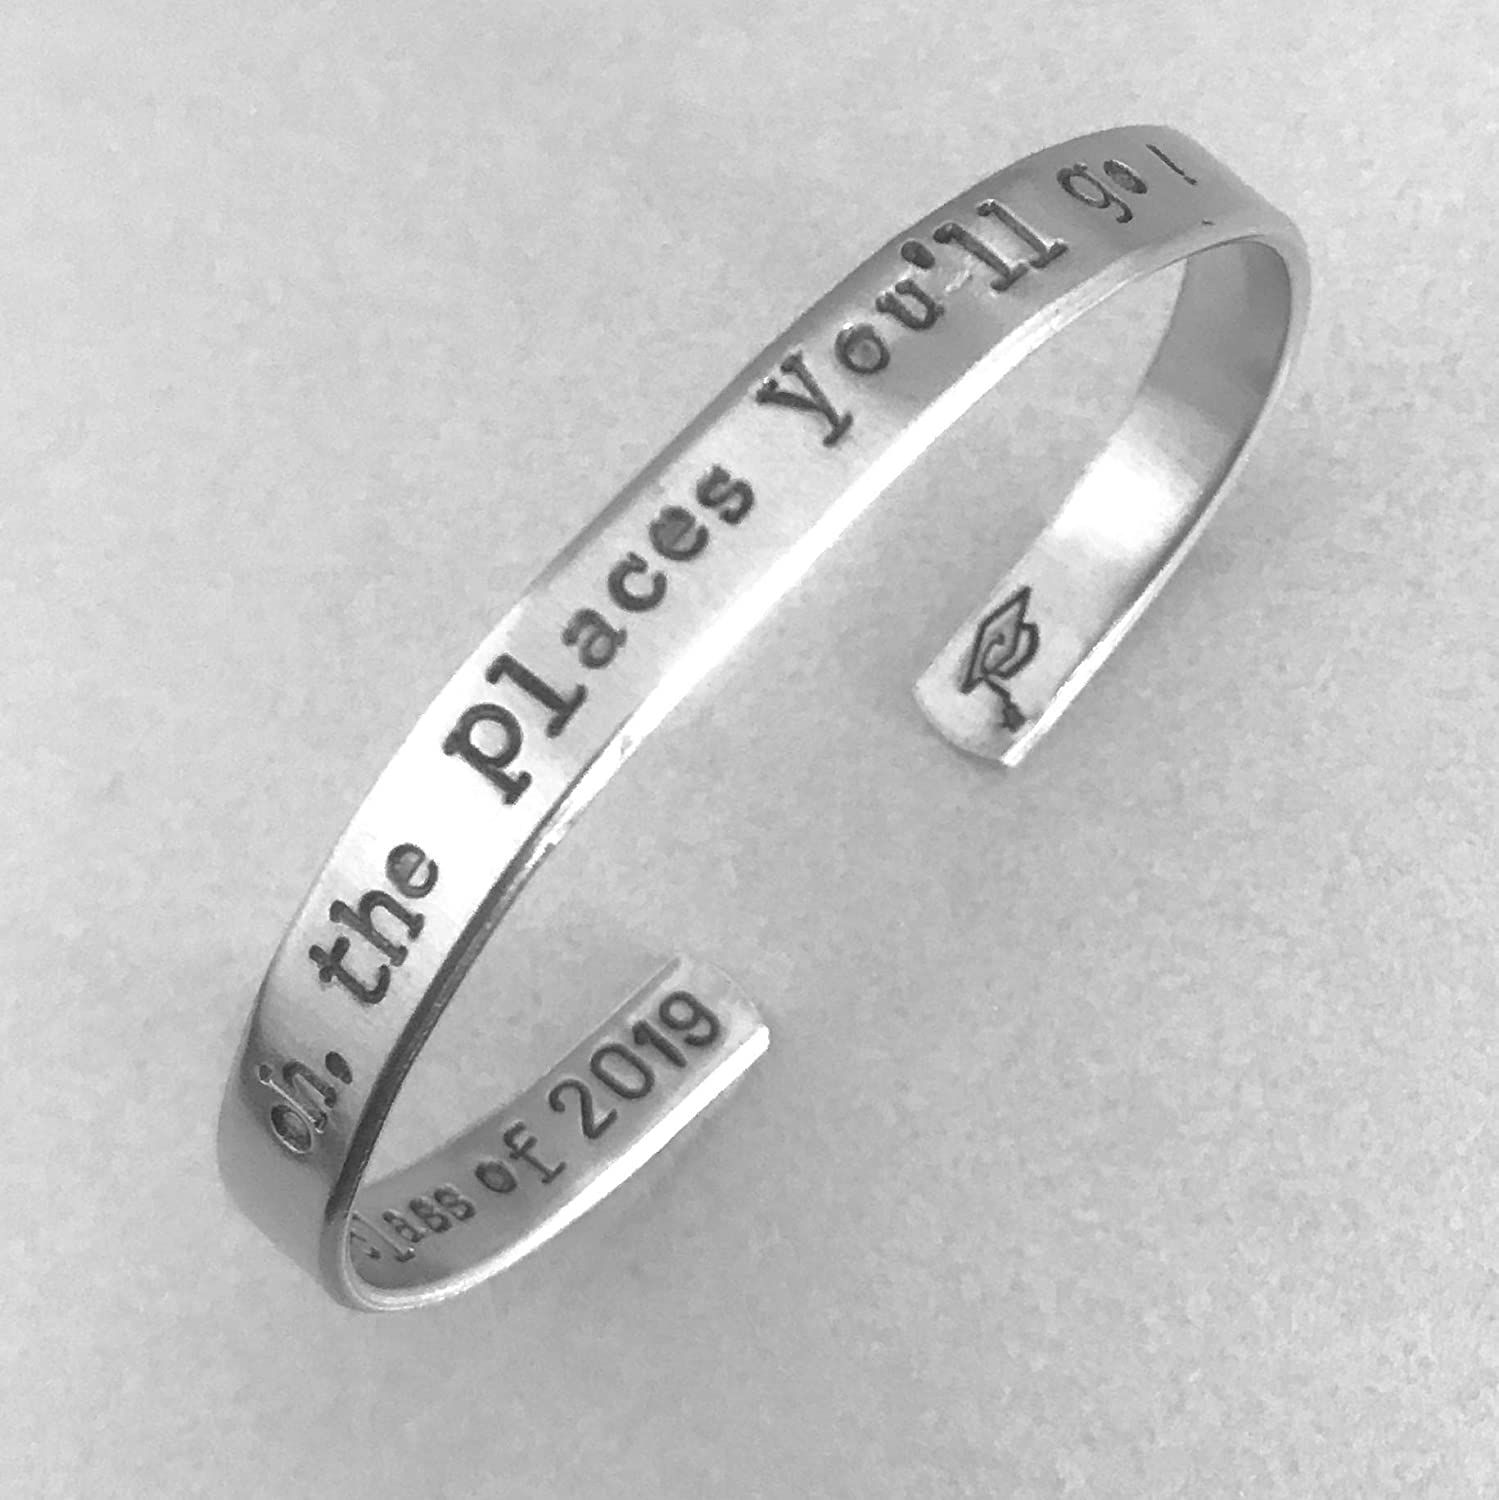 Graduation Gift -Oh the Places You'll 201 Go Max 71% OFF bracelet New item of - Class